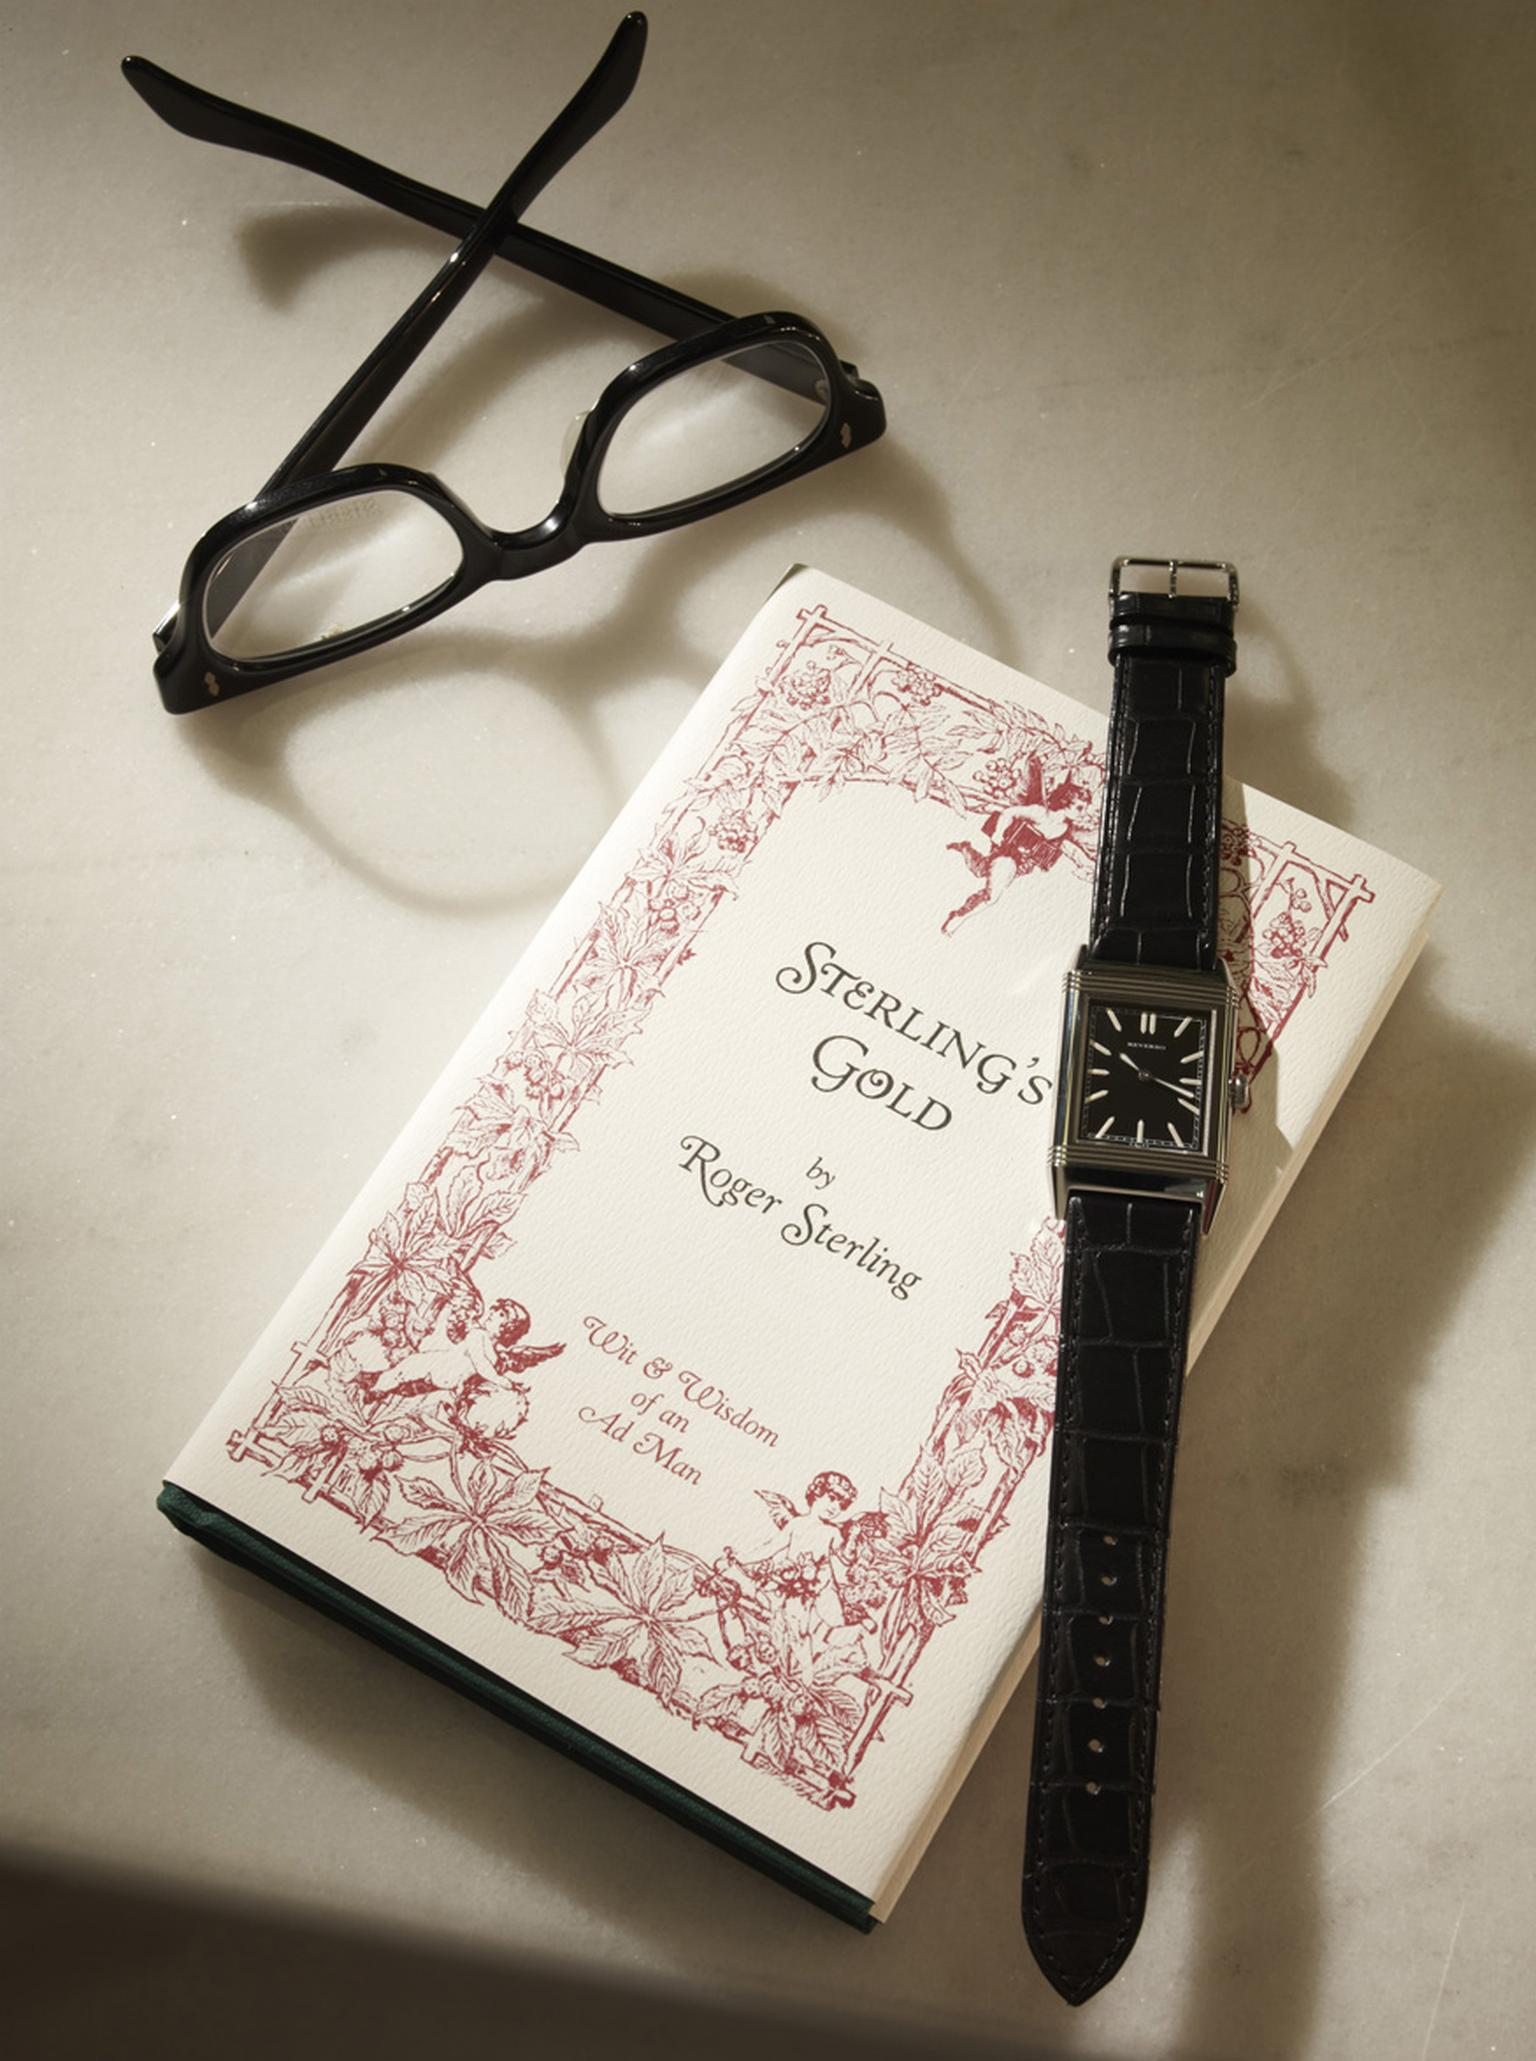 Jaeger-LeCoultre Mad Men 7